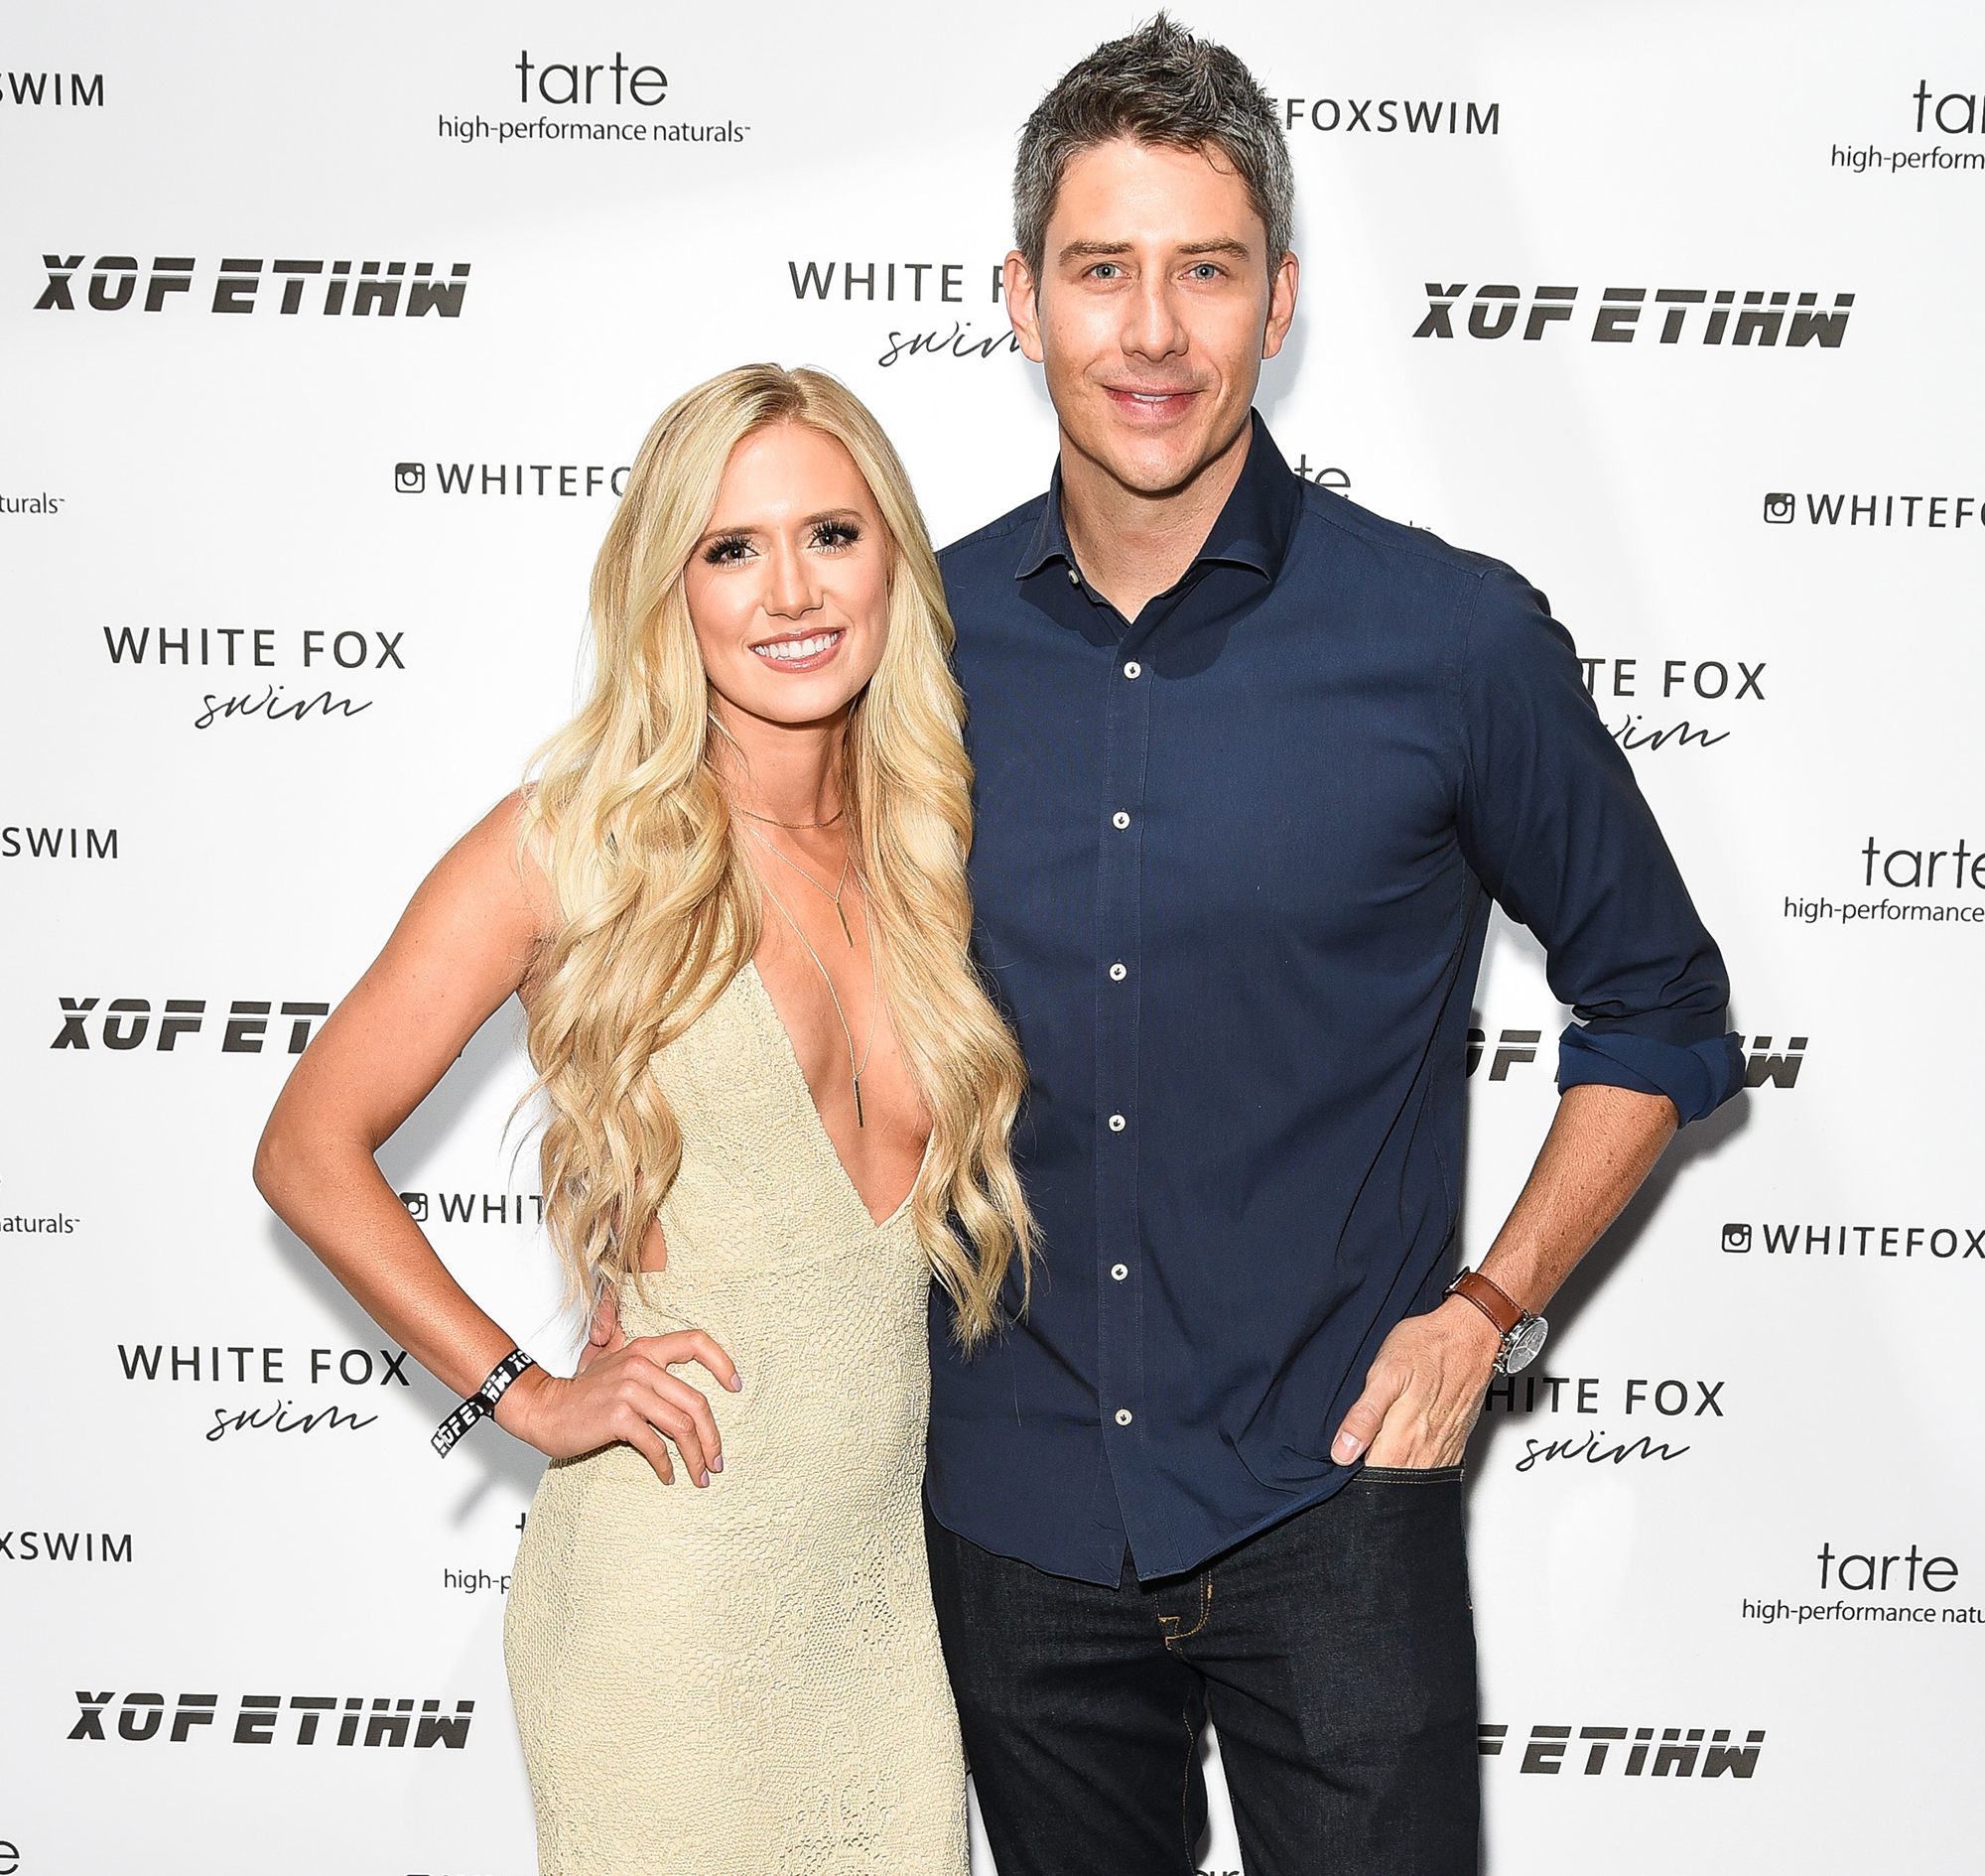 """Arie-Luyendyk-Jr. ,-Lauren-Burnham-wedding-Ceremony - In May 2018, Luyendyk Jr. said on The View that he and Burnham were tying the knot in """"a private wedding"""" that wouldn't be televised."""